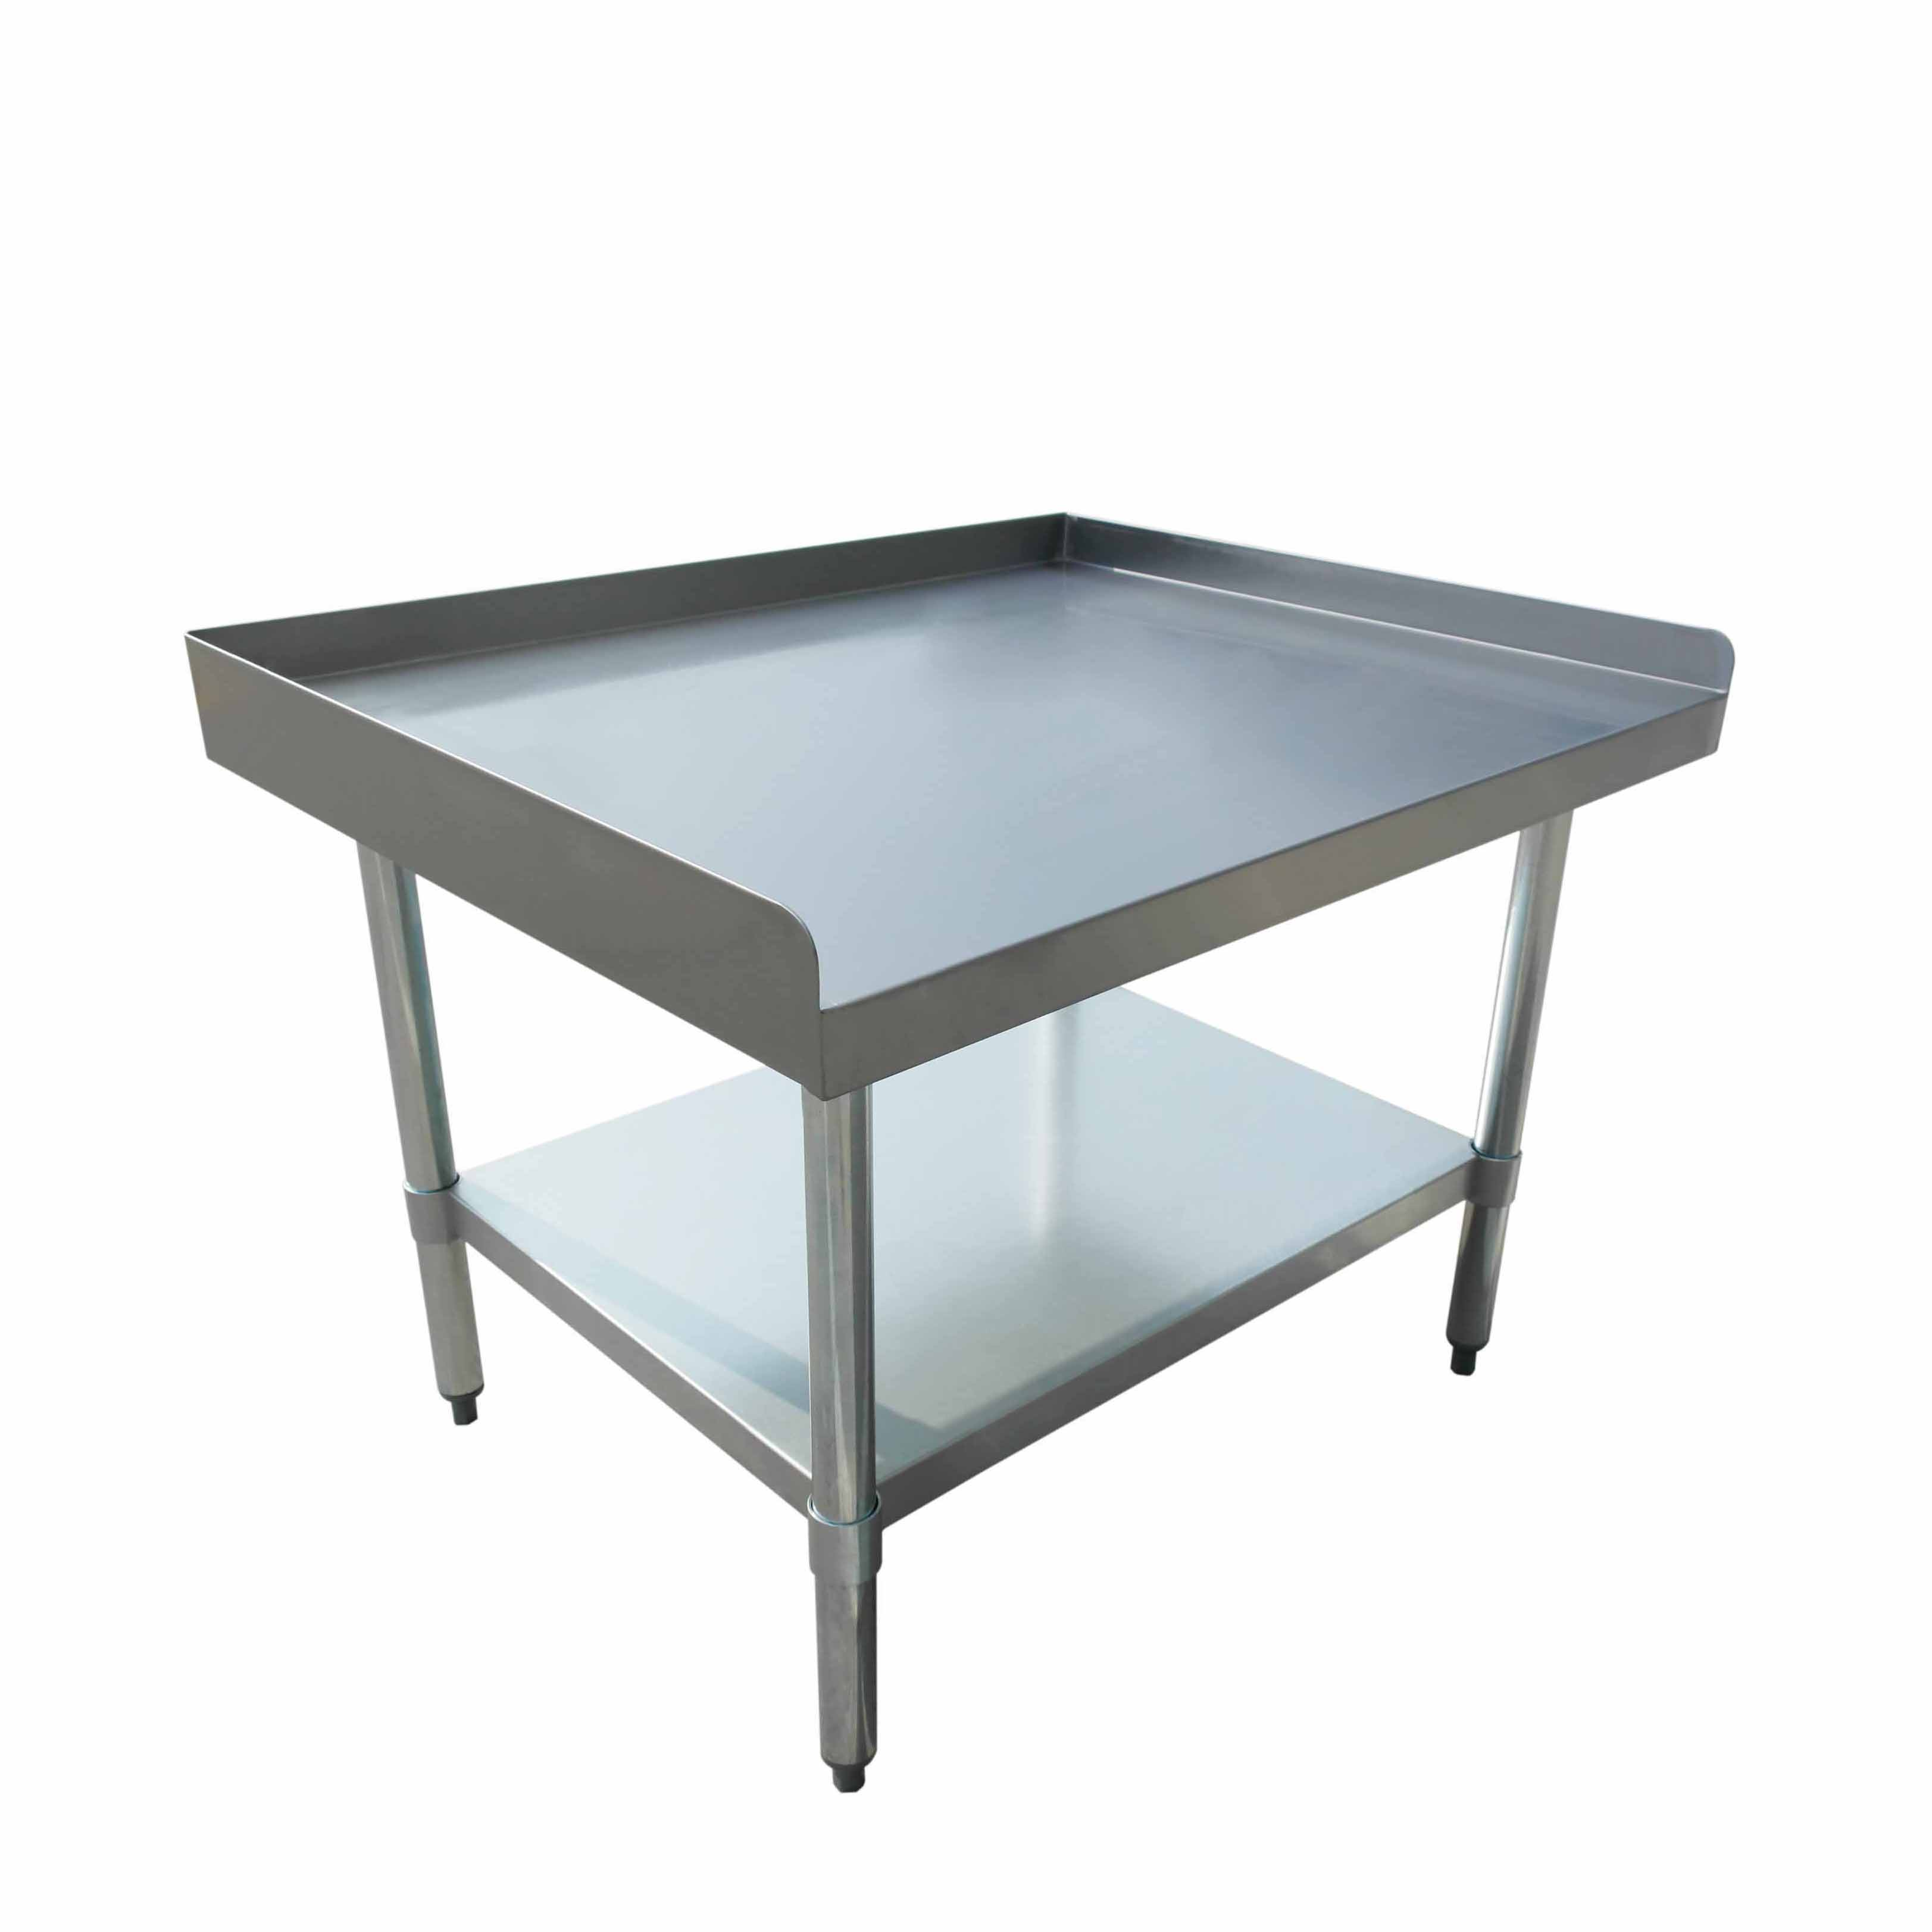 BevLes Company BES184U3036G equipment stand, for countertop cooking